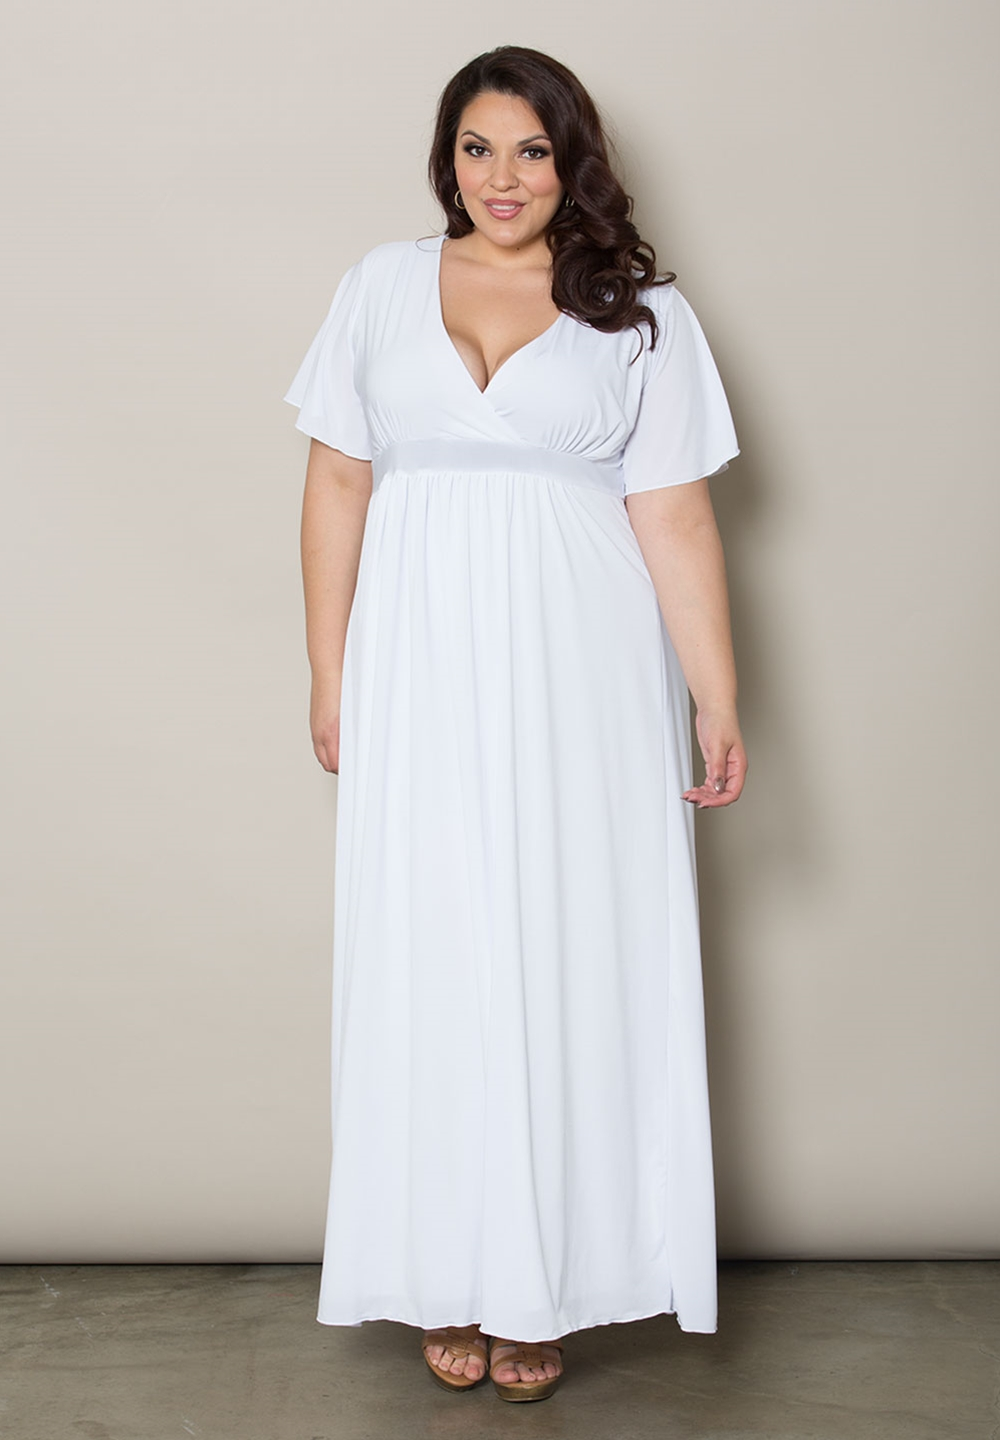 samreinselphotography: Plus size dresses White